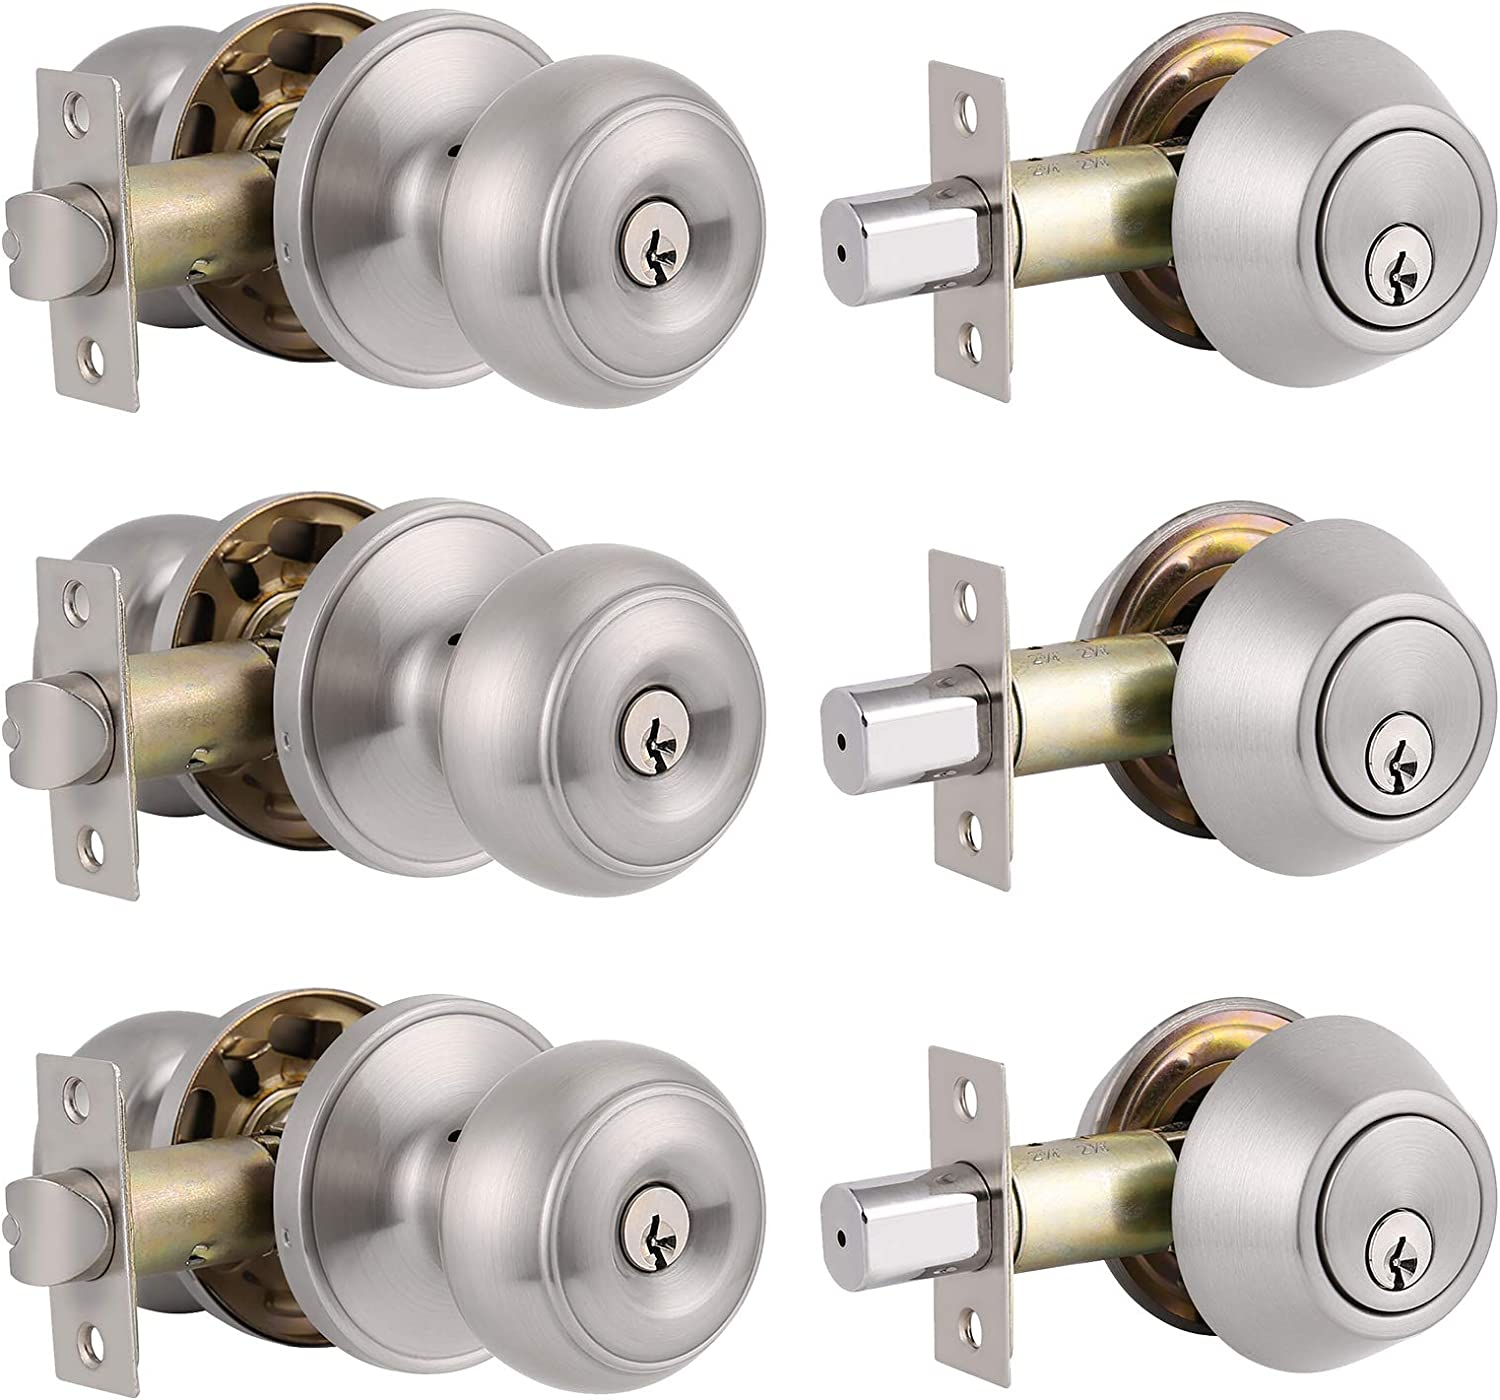 3 Pack Entry Door Knobs and Double Cylinder Deadbolt Lock Combo Set,